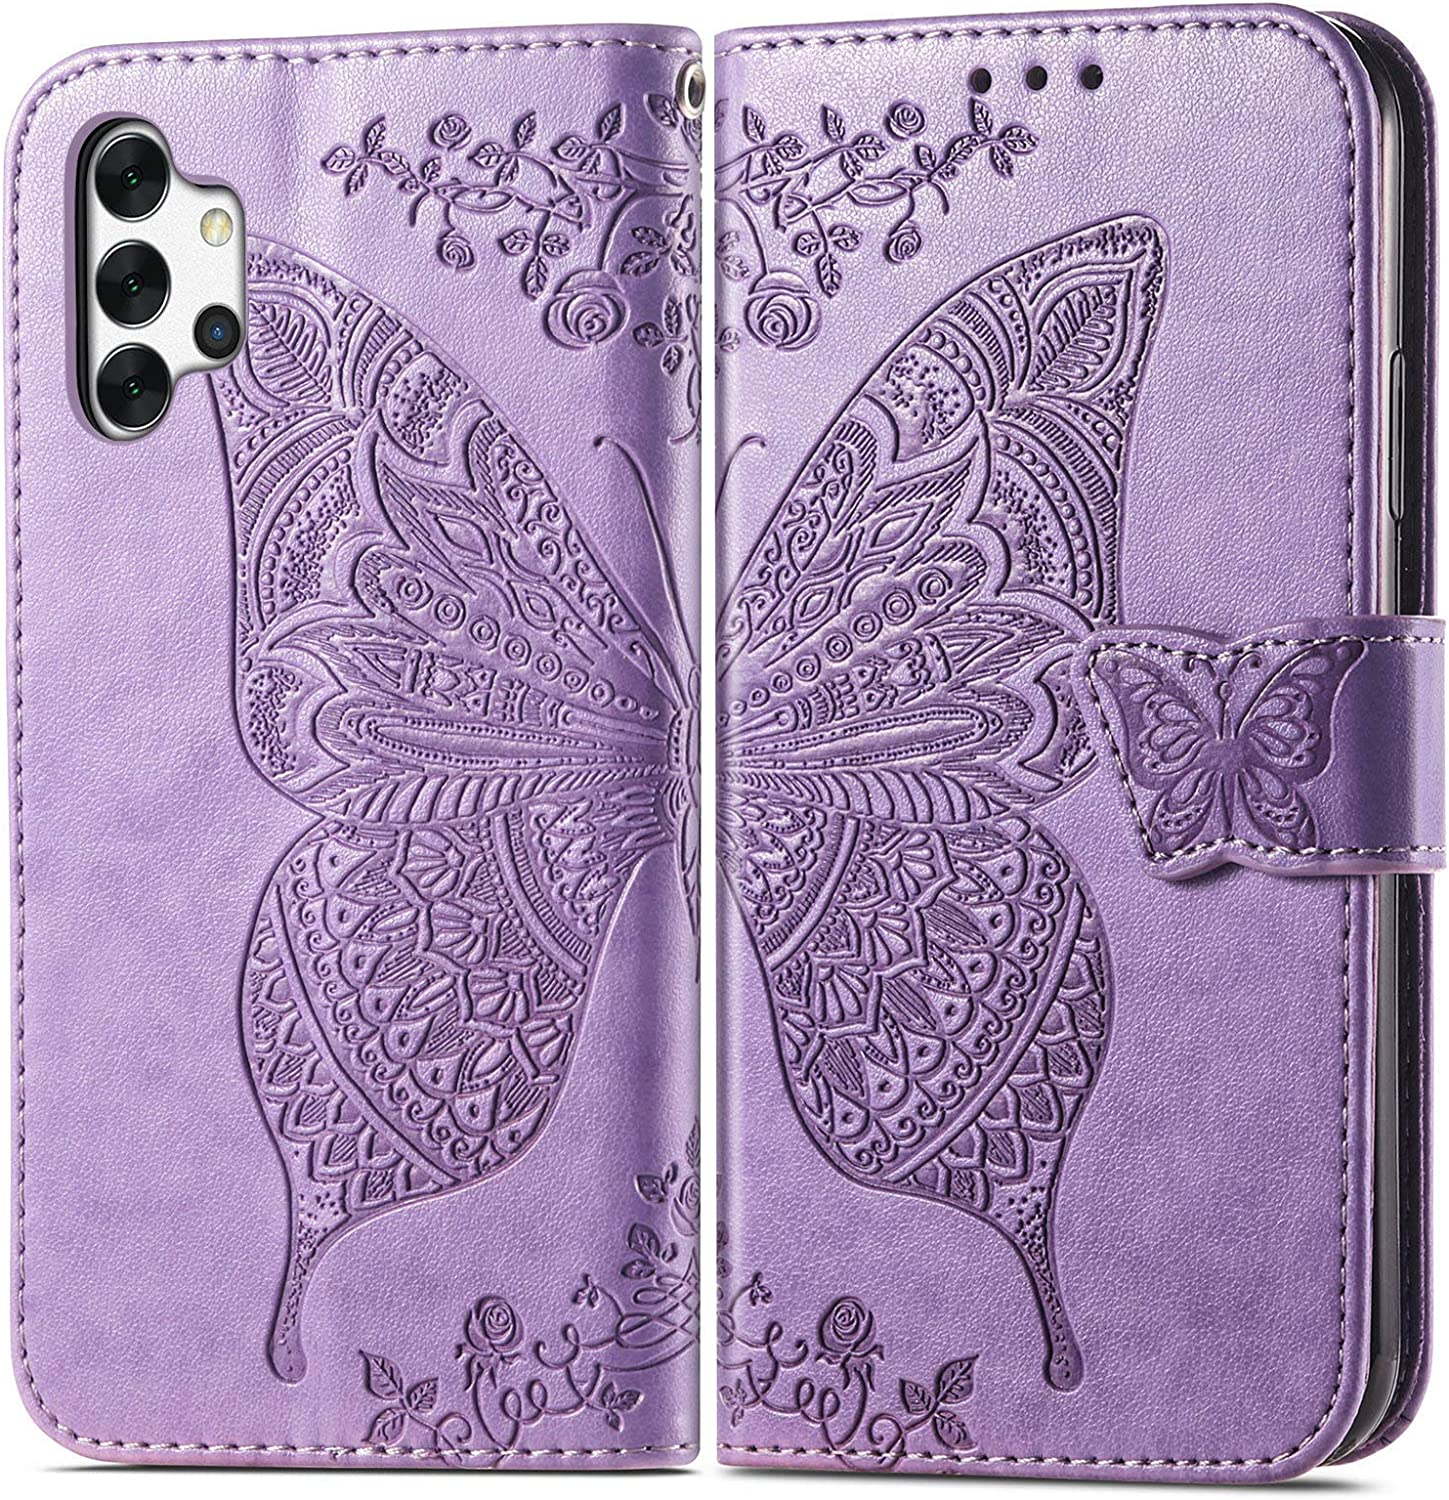 Daole Butterfly Wallet Case for Samsung Galaxy S21 5G 2021 Case Women Violet, Patterned PU Leather Magnetic Flip Case for Samsung Galaxy S21 with Card Holder & Kickstand